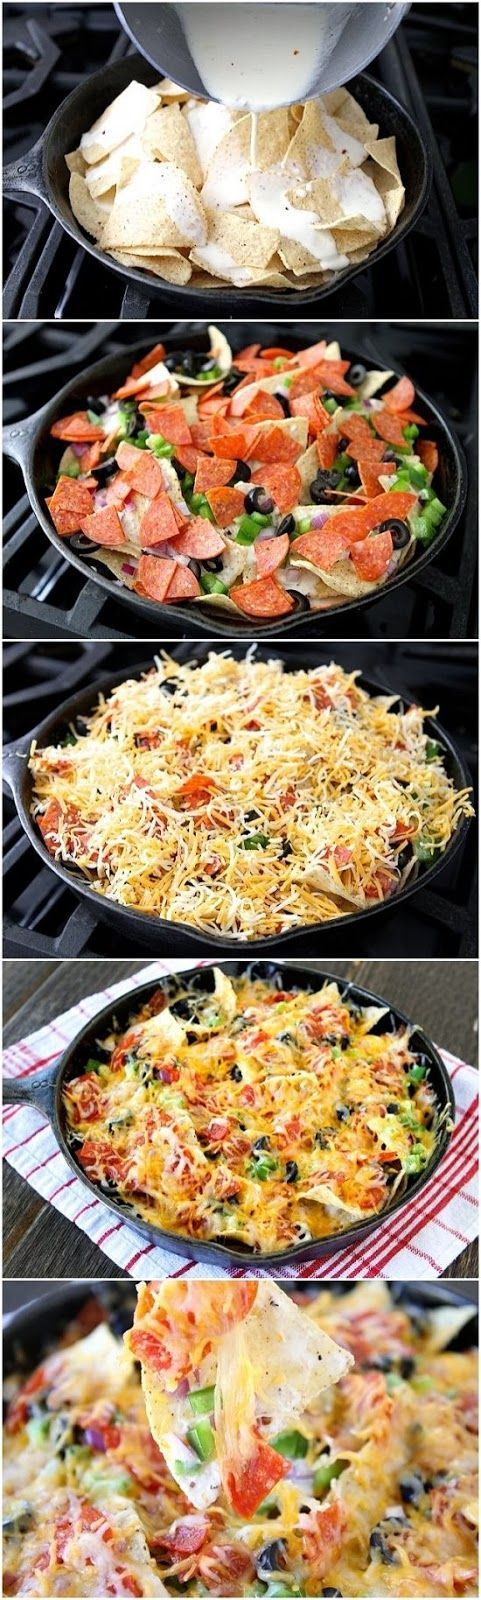 Pizza Nachos! 2 of my favorite things combined!!'